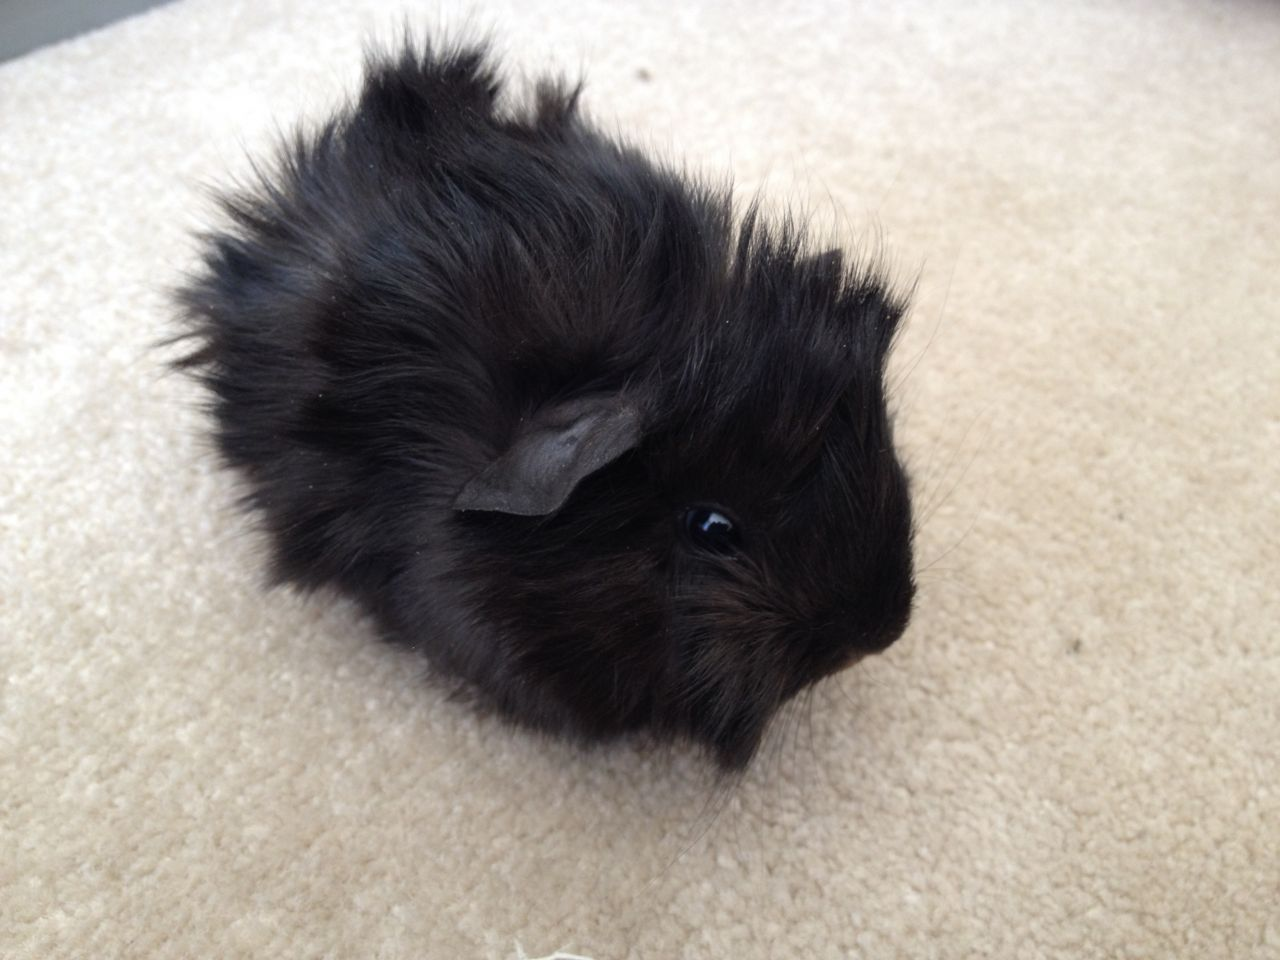 Pin On Guinea Pig Babies